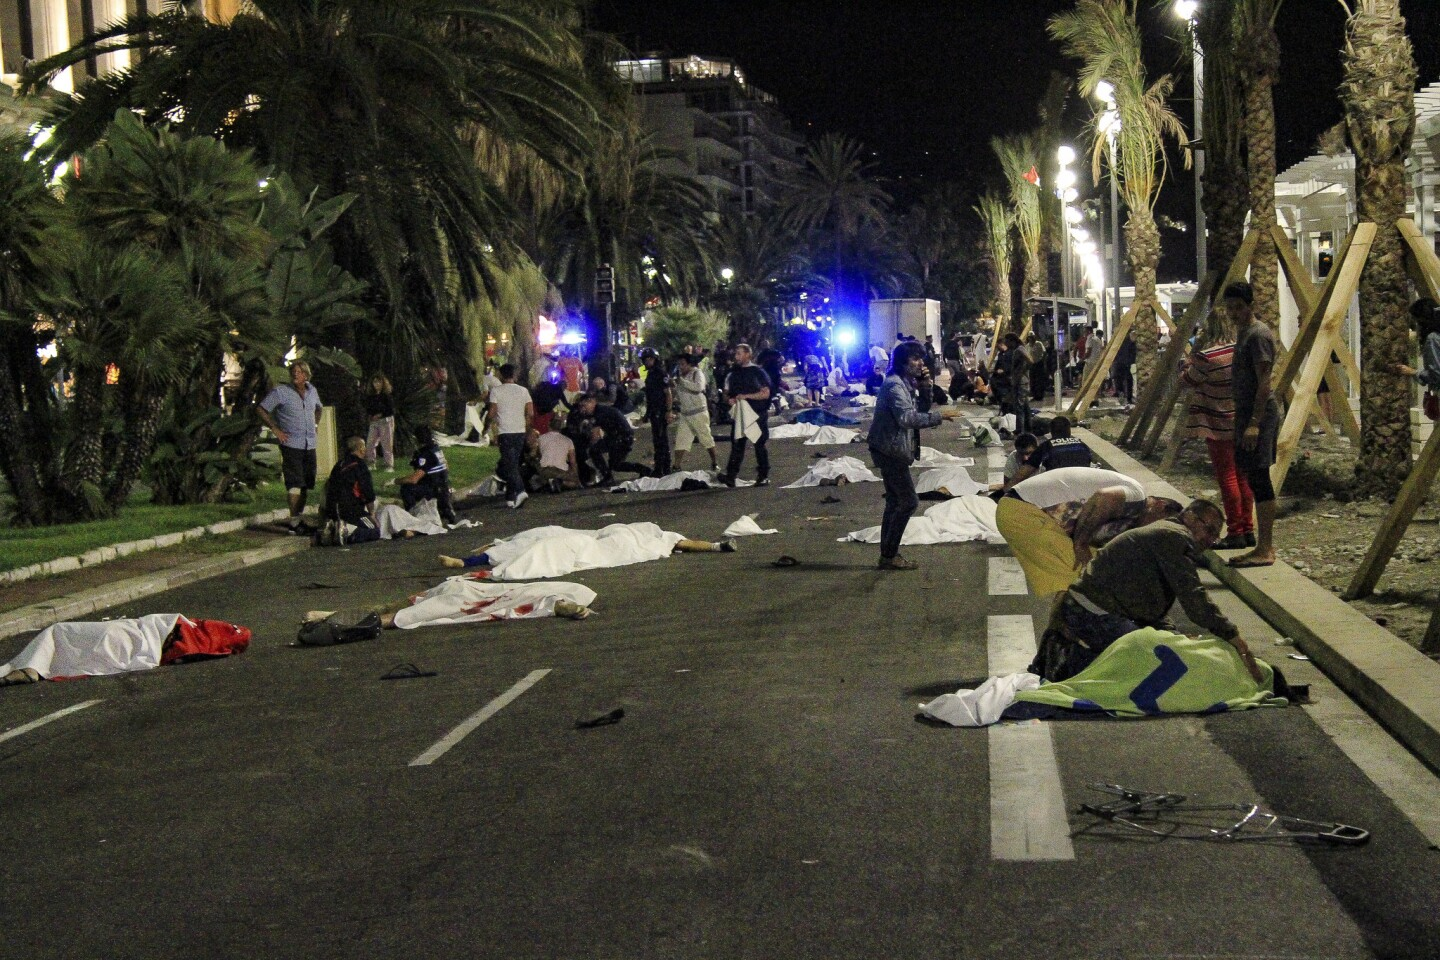 Bodies lay on the street after a truck drove through a crowded seaside promenade in Nice, France, during Bastille Day celebrations, leaving more than 80 dead and hundreds wounded.